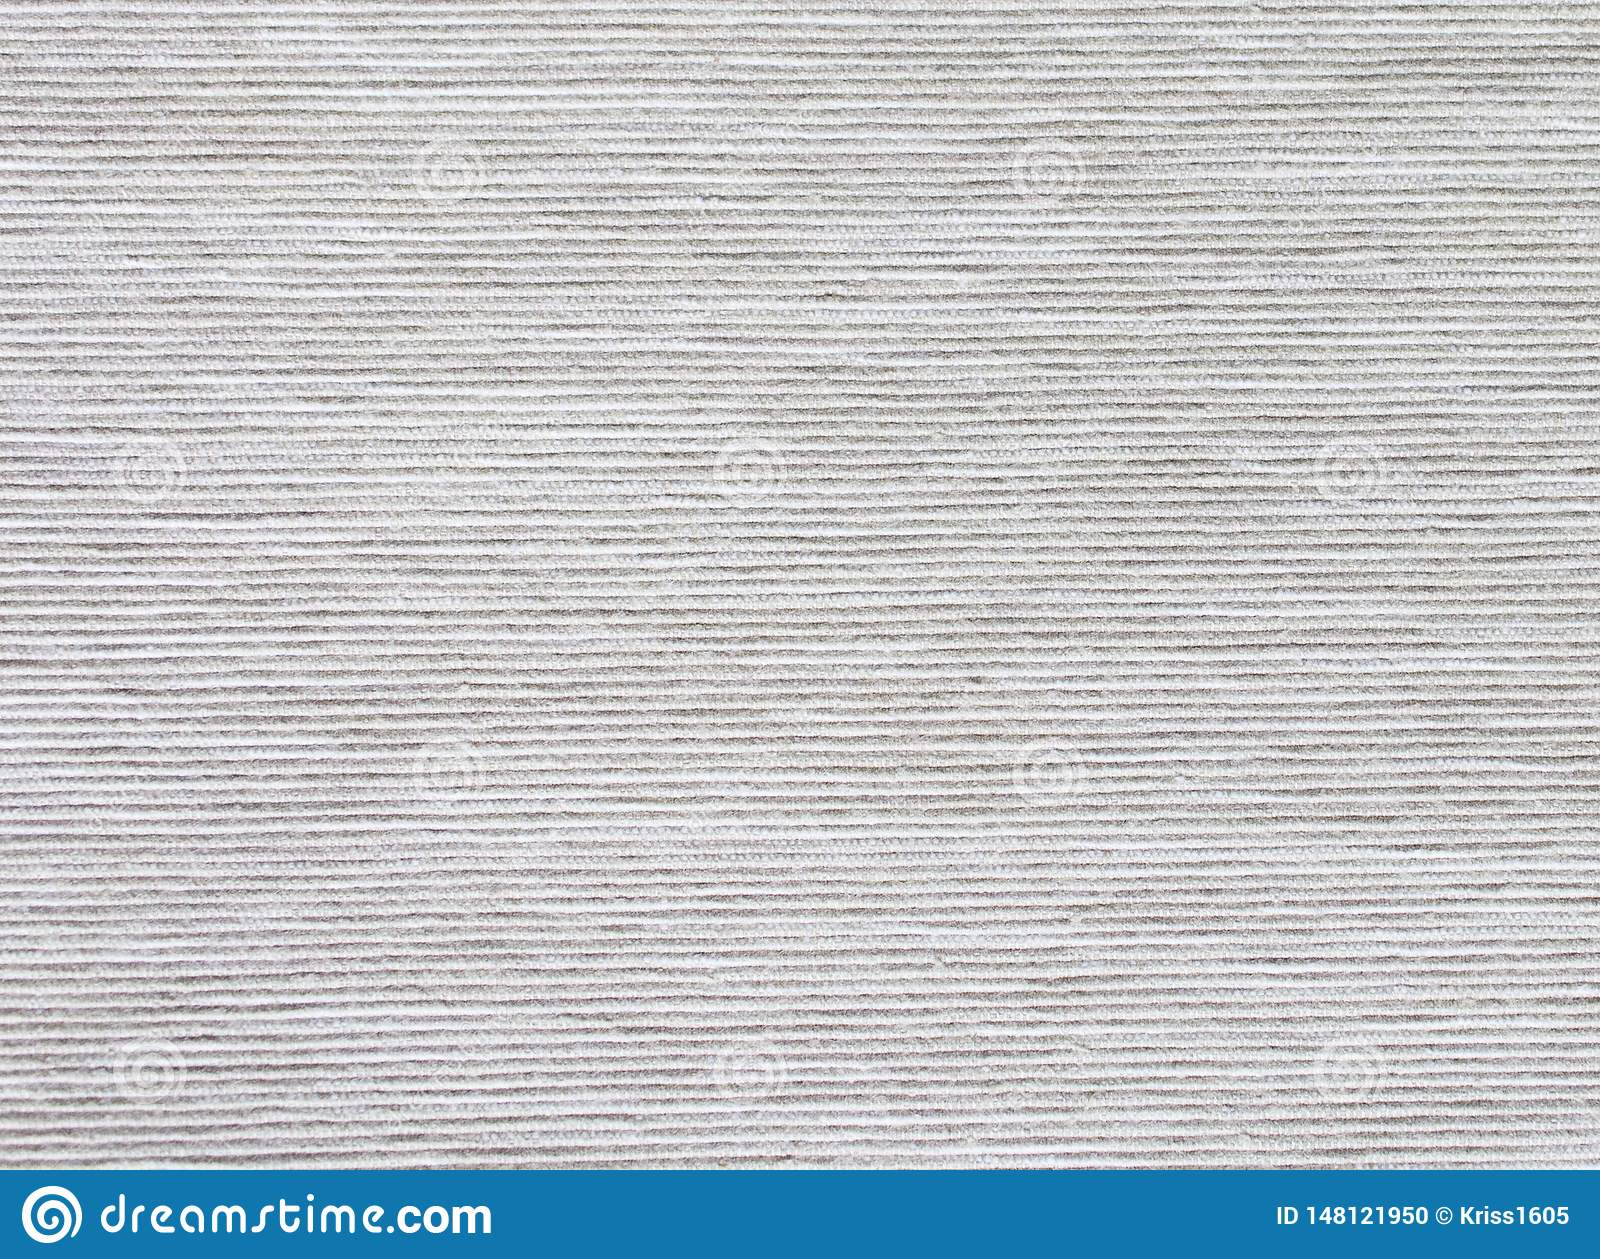 striped texture of gray natural interior fabric